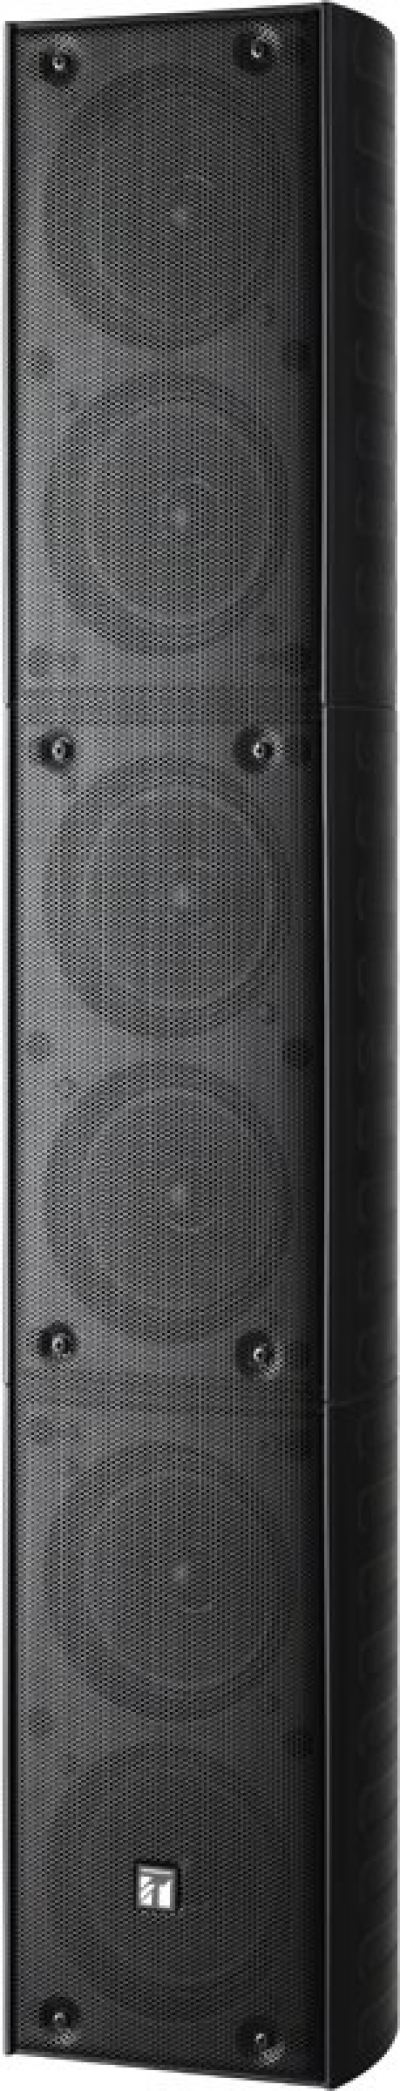 TZ-606B. TOA Column Speaker System. #AIASIA Connect